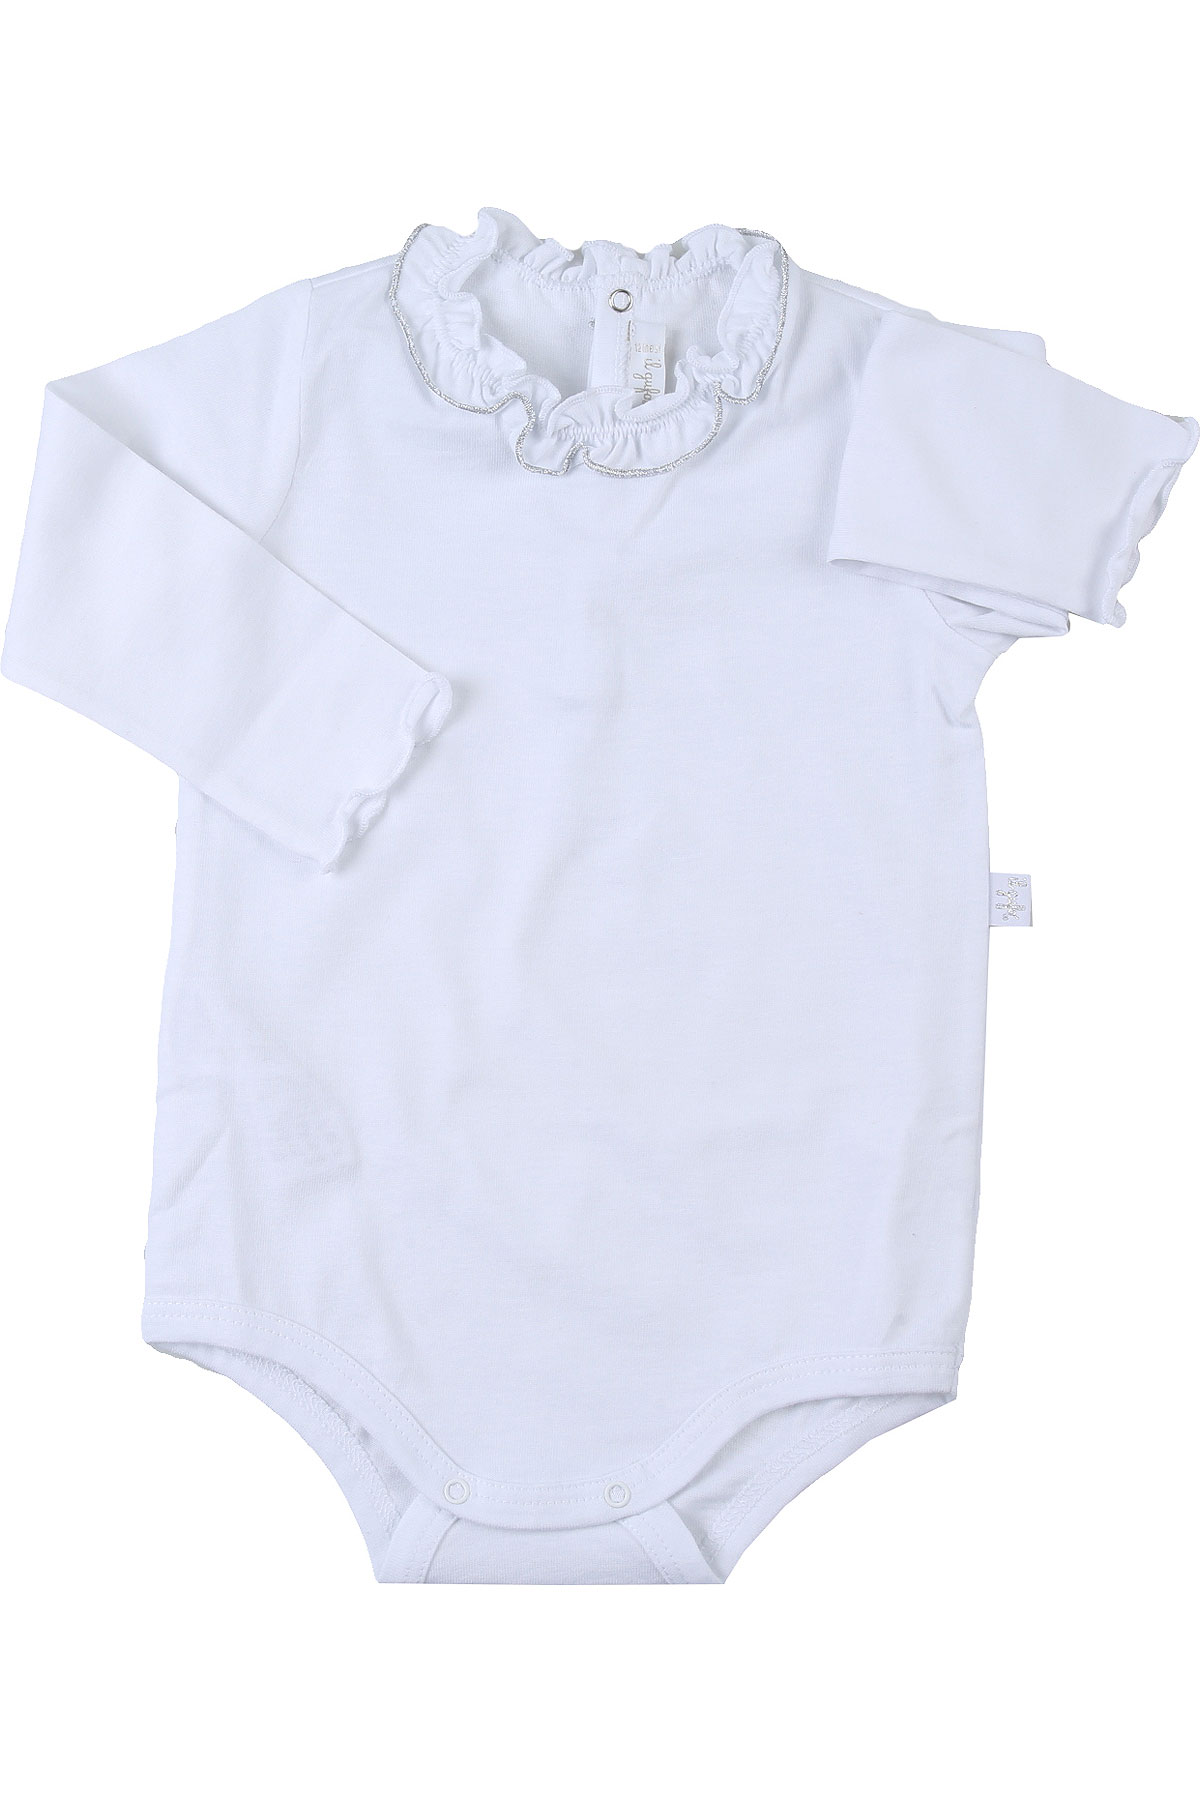 Il Gufo Baby Bodysuits & Onesies for Girls On Sale, White, Cotton, 2019, 12M 18M